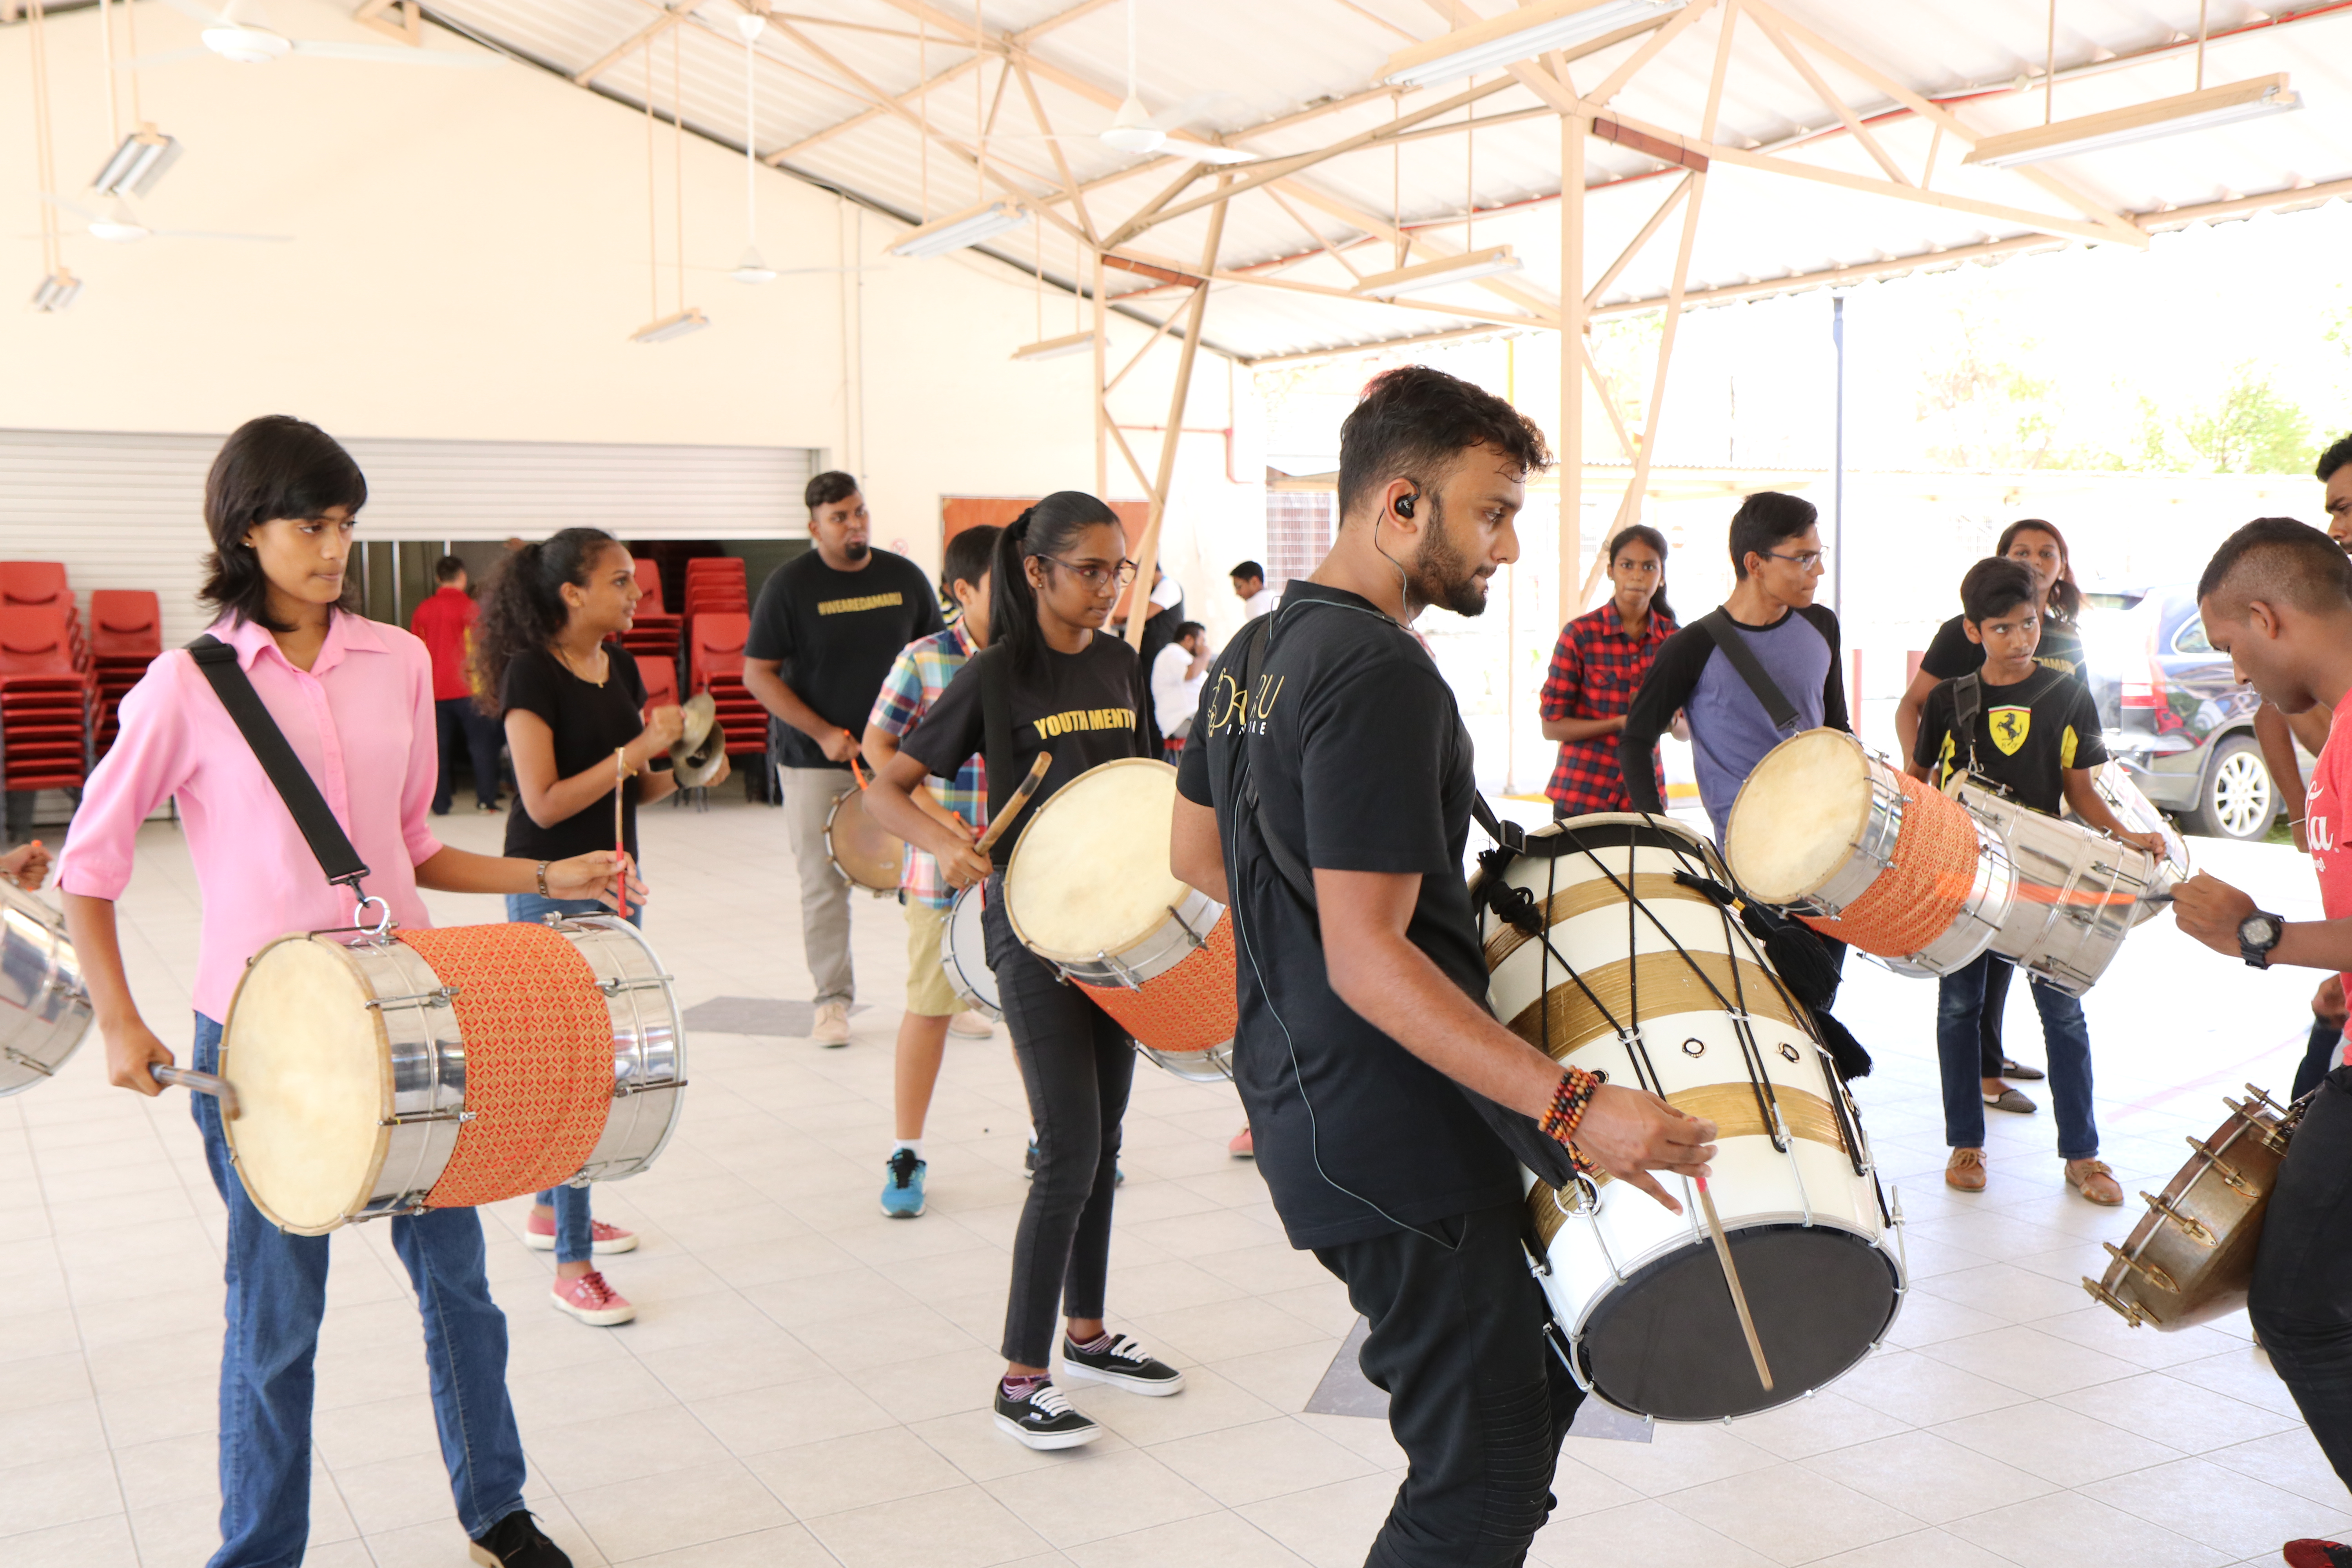 SINDA trains youth in playing various musical instruments.